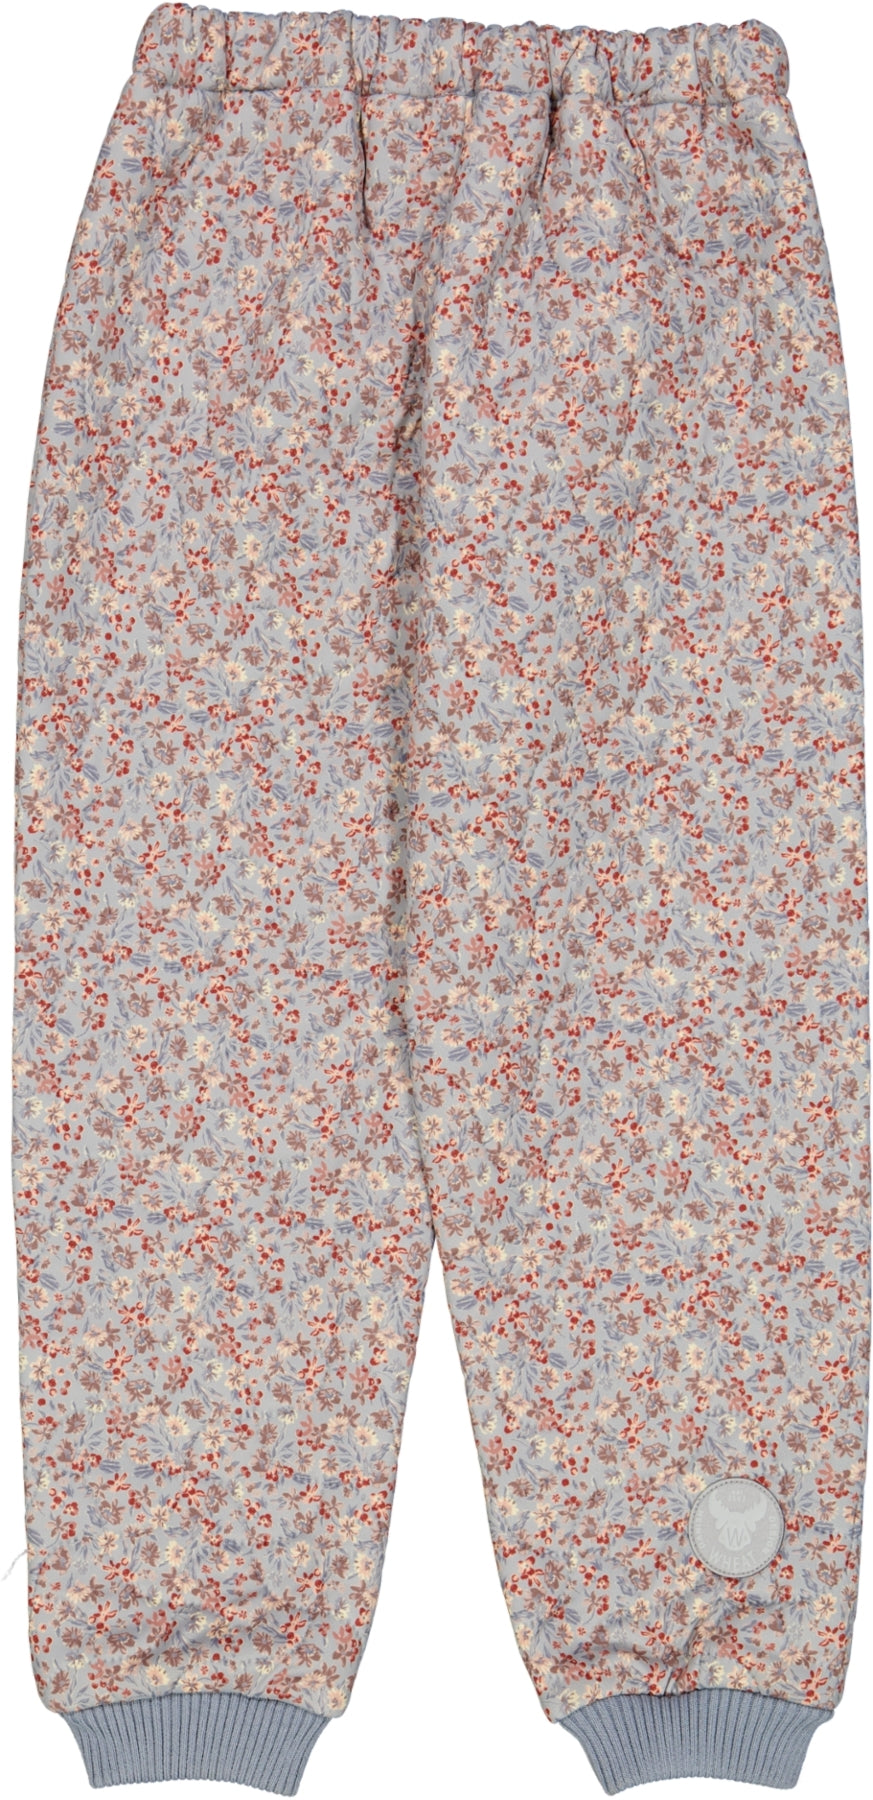 Thermo Pants Alex - Dusty dove flowers - baby - Wheat - Spring 21